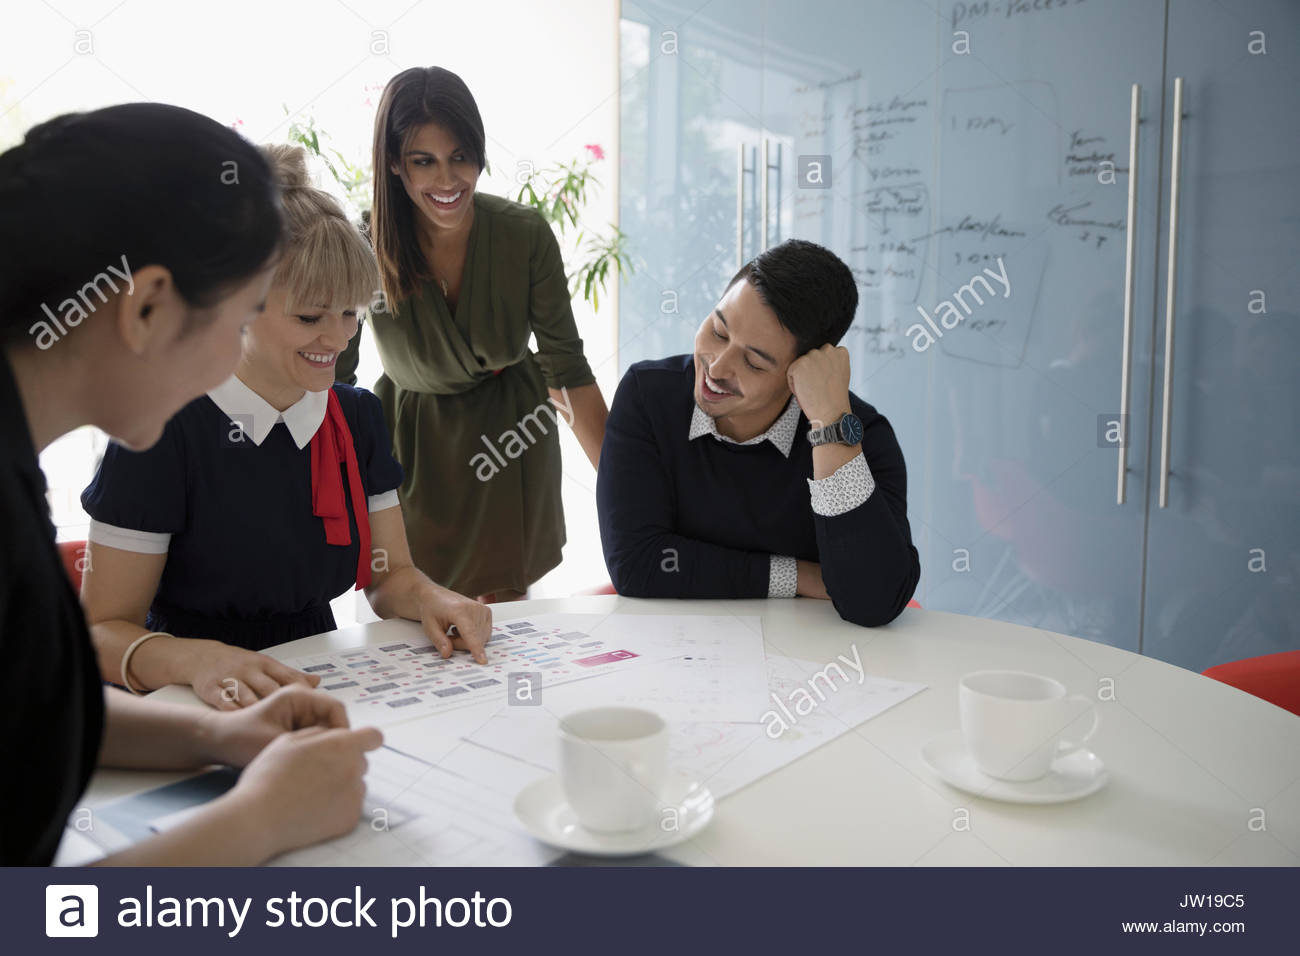 Smiling designers reviewing production schedule in conference room meeting - Stock Image